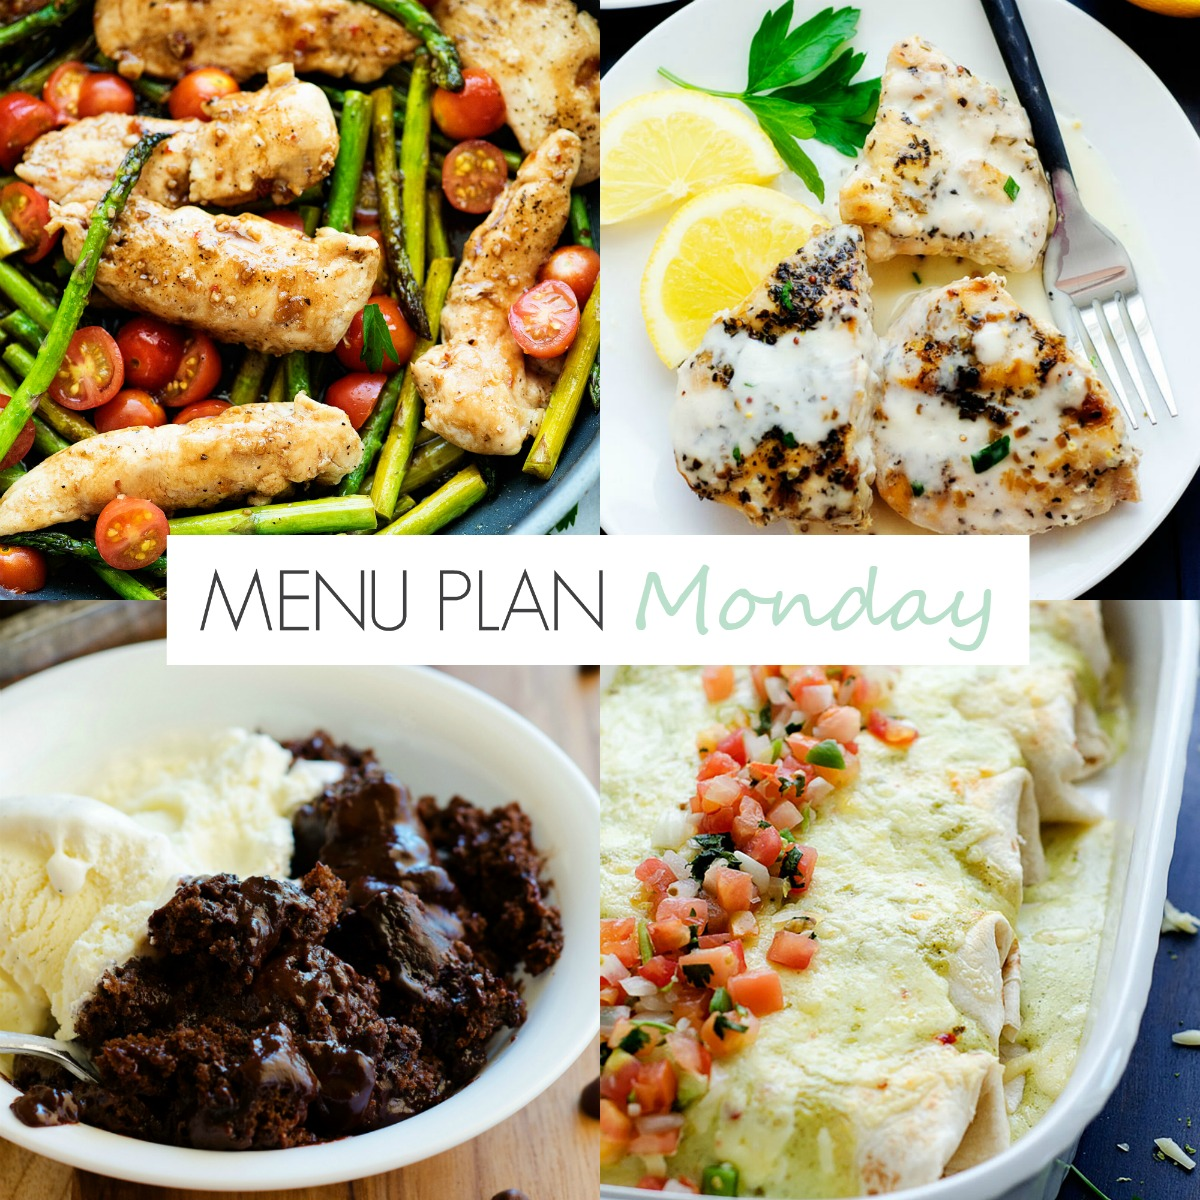 Smothered Chicken Burritos, Crock Pot Lemon Chicken and more easy recipes on Menu Plan Monday #158